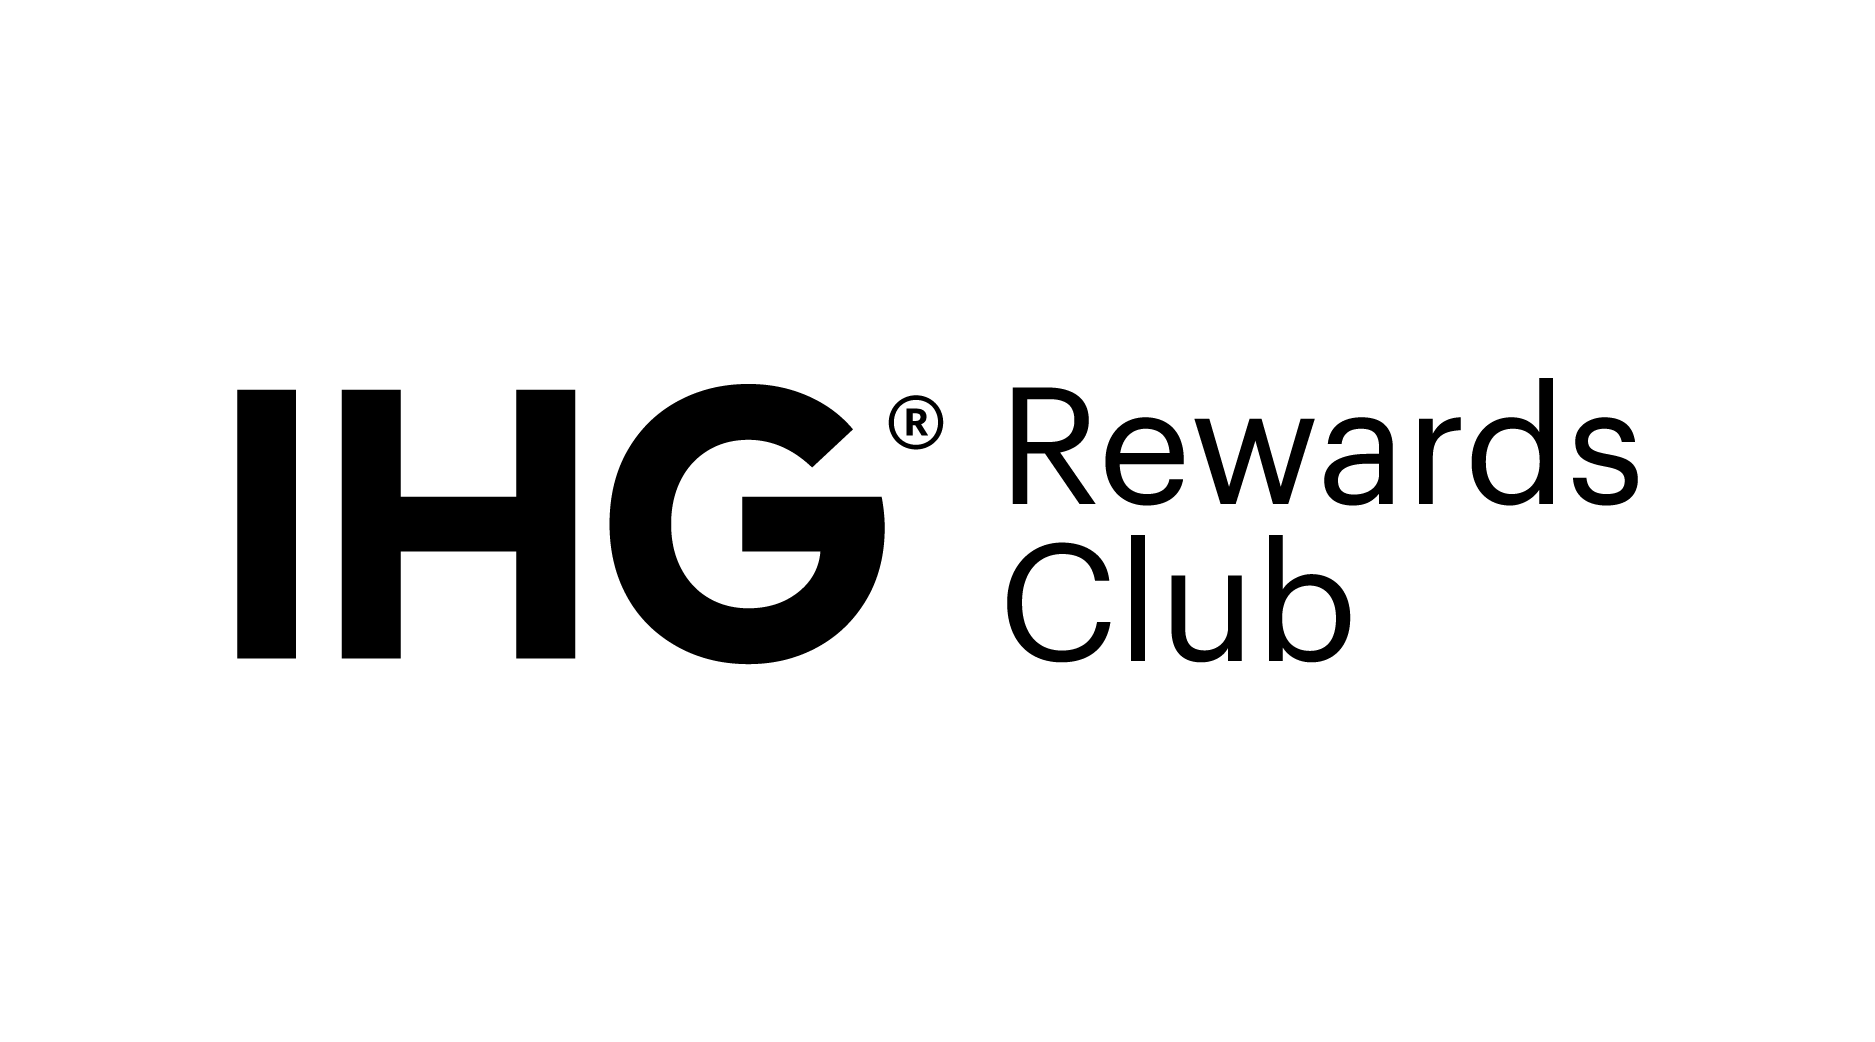 asset-logo_ihg-rewards-club.png